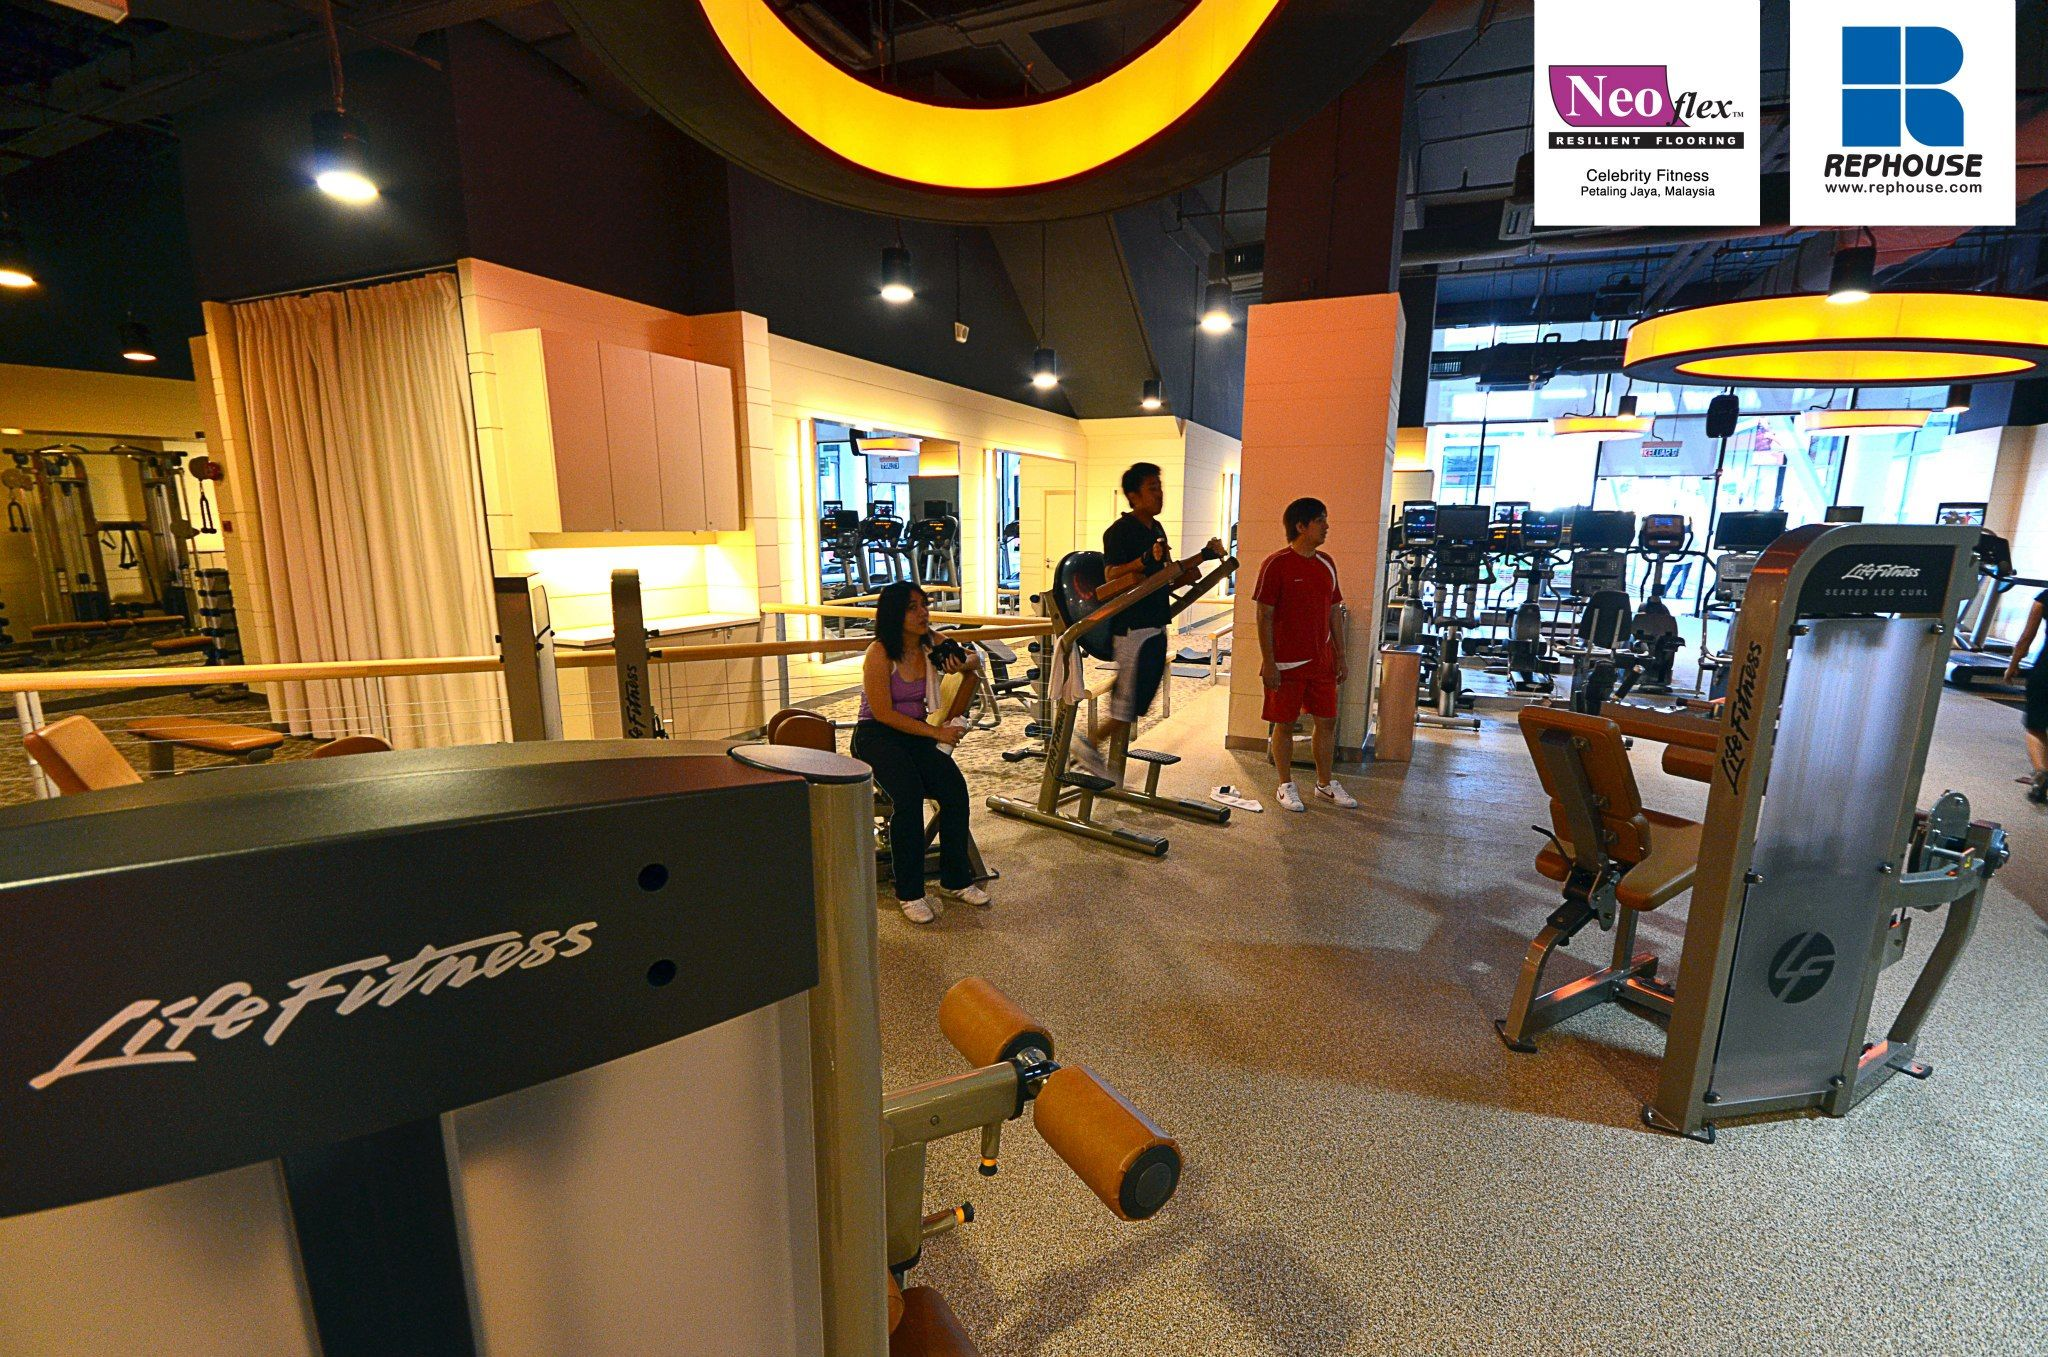 Neoflex 700 Series Rubber Fitness Flooring Celebrity